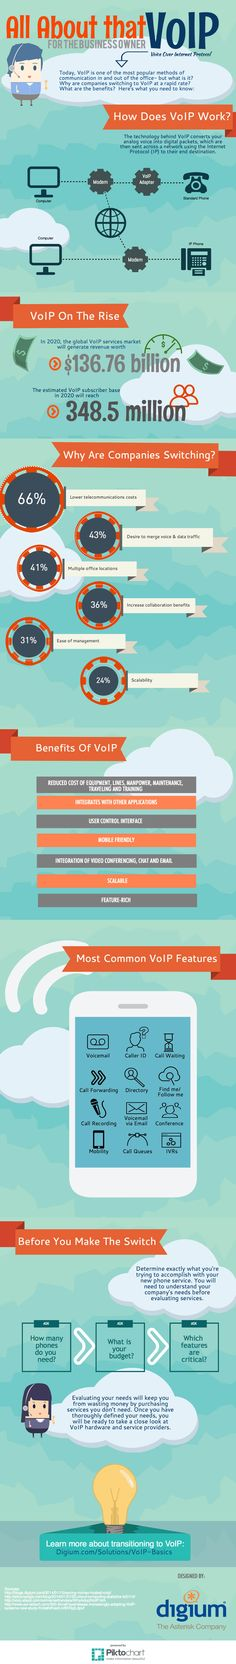 All About That VoIP: VoIP decoded for Business Owners